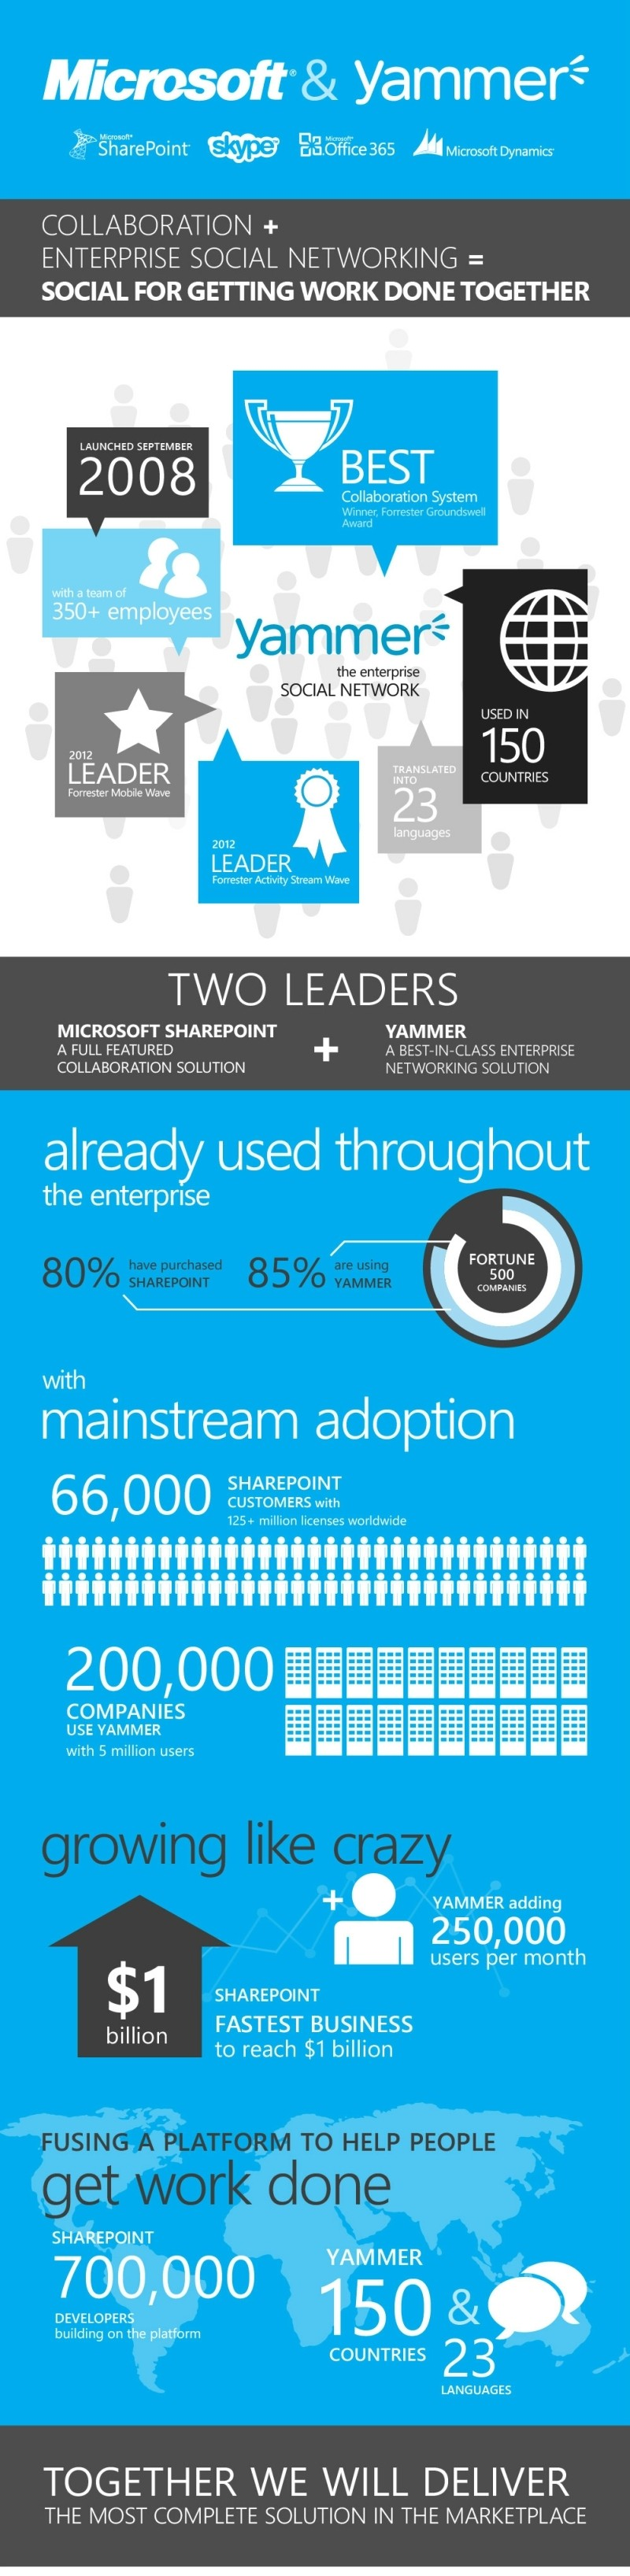 Microsoft Buys Yammer Cash Deal enterprise social networking infographic